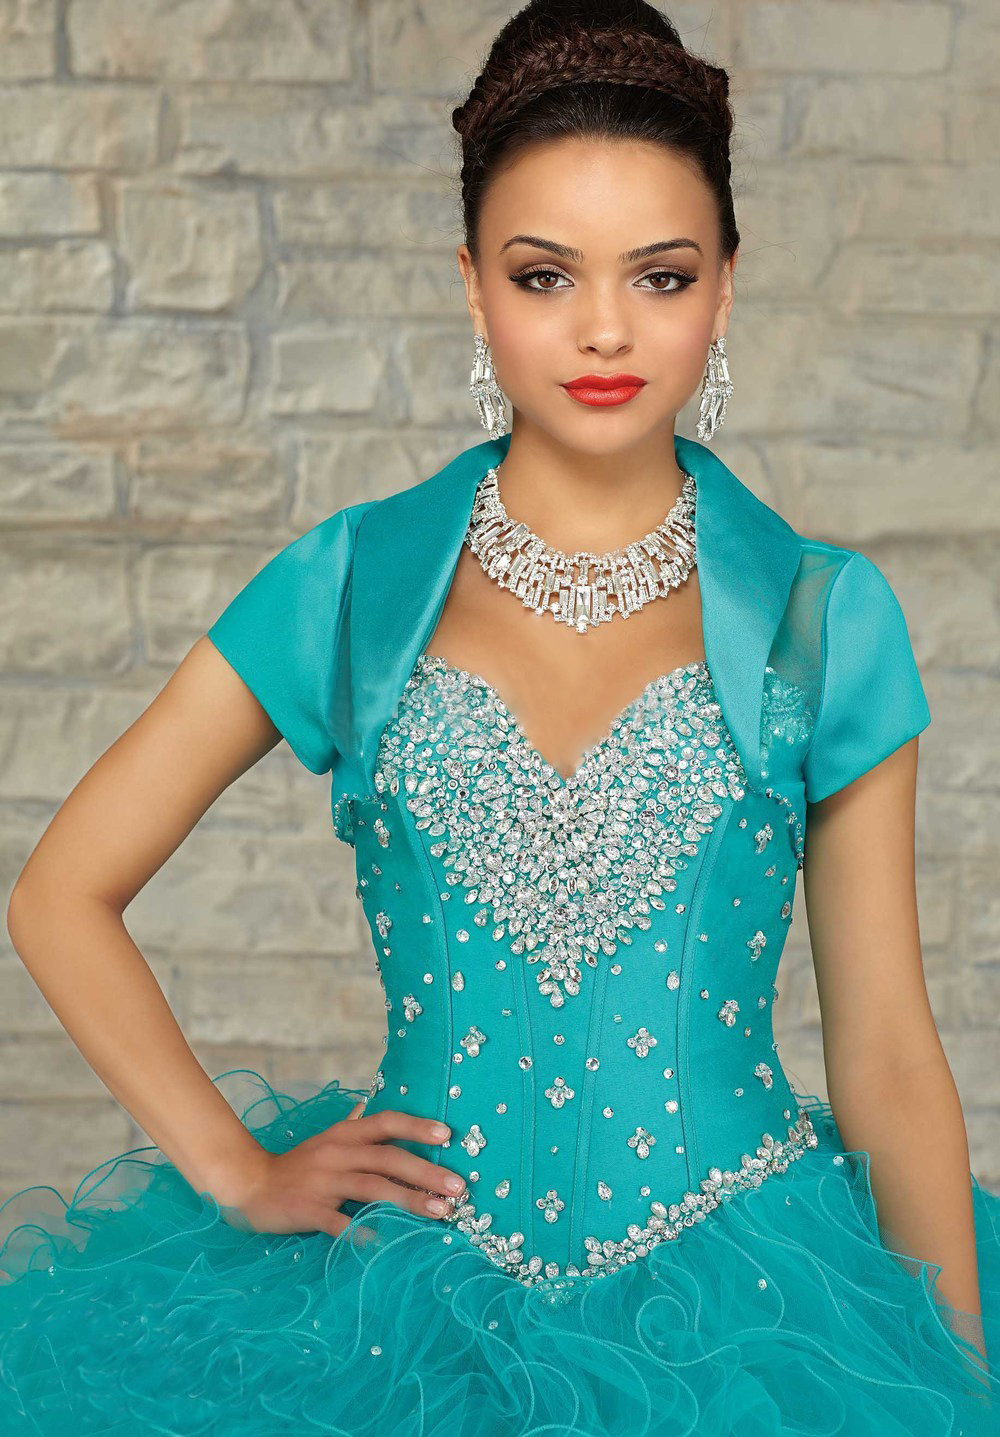 New-Style-Turquoise-Quinceanera-Dresses-With-Jacket-2015-Ball-Gown-Ruffled-Debutante-Dress-For-15-Years (3).jpg